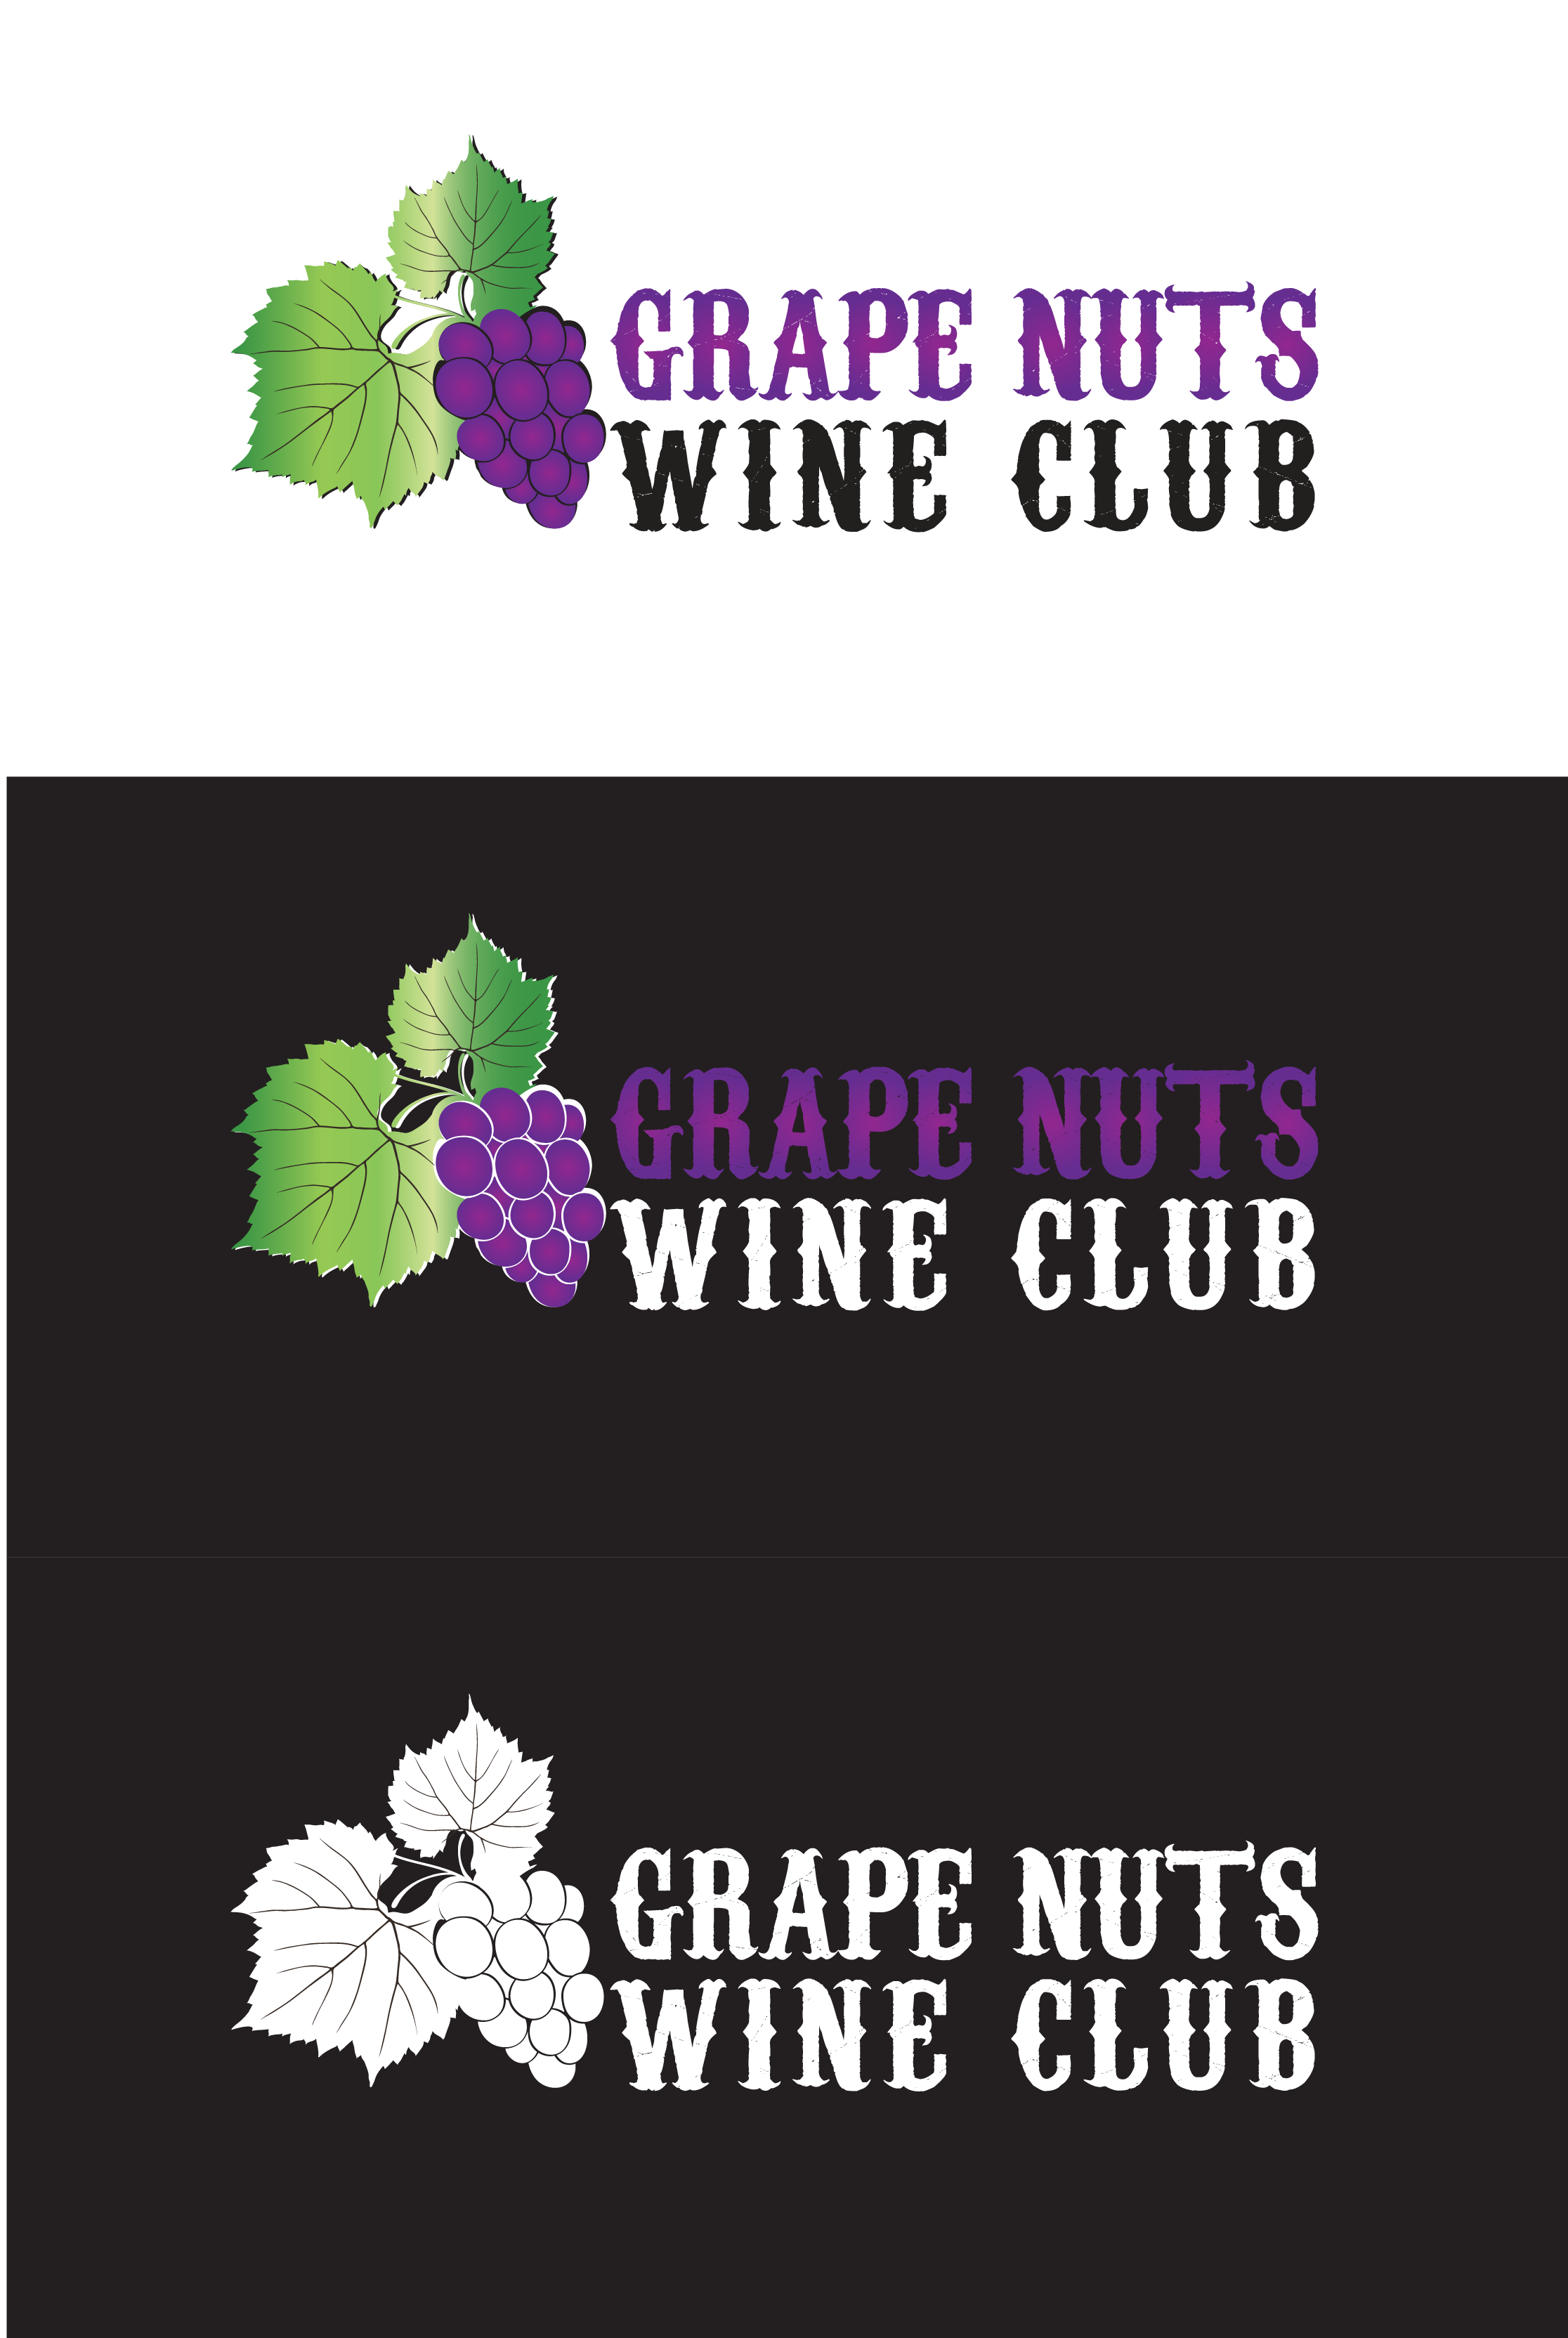 Logo Design by mediaproductionart - Entry No. 25 in the Logo Design Contest Artistic Logo Design for Grape Nuts Wine Club.